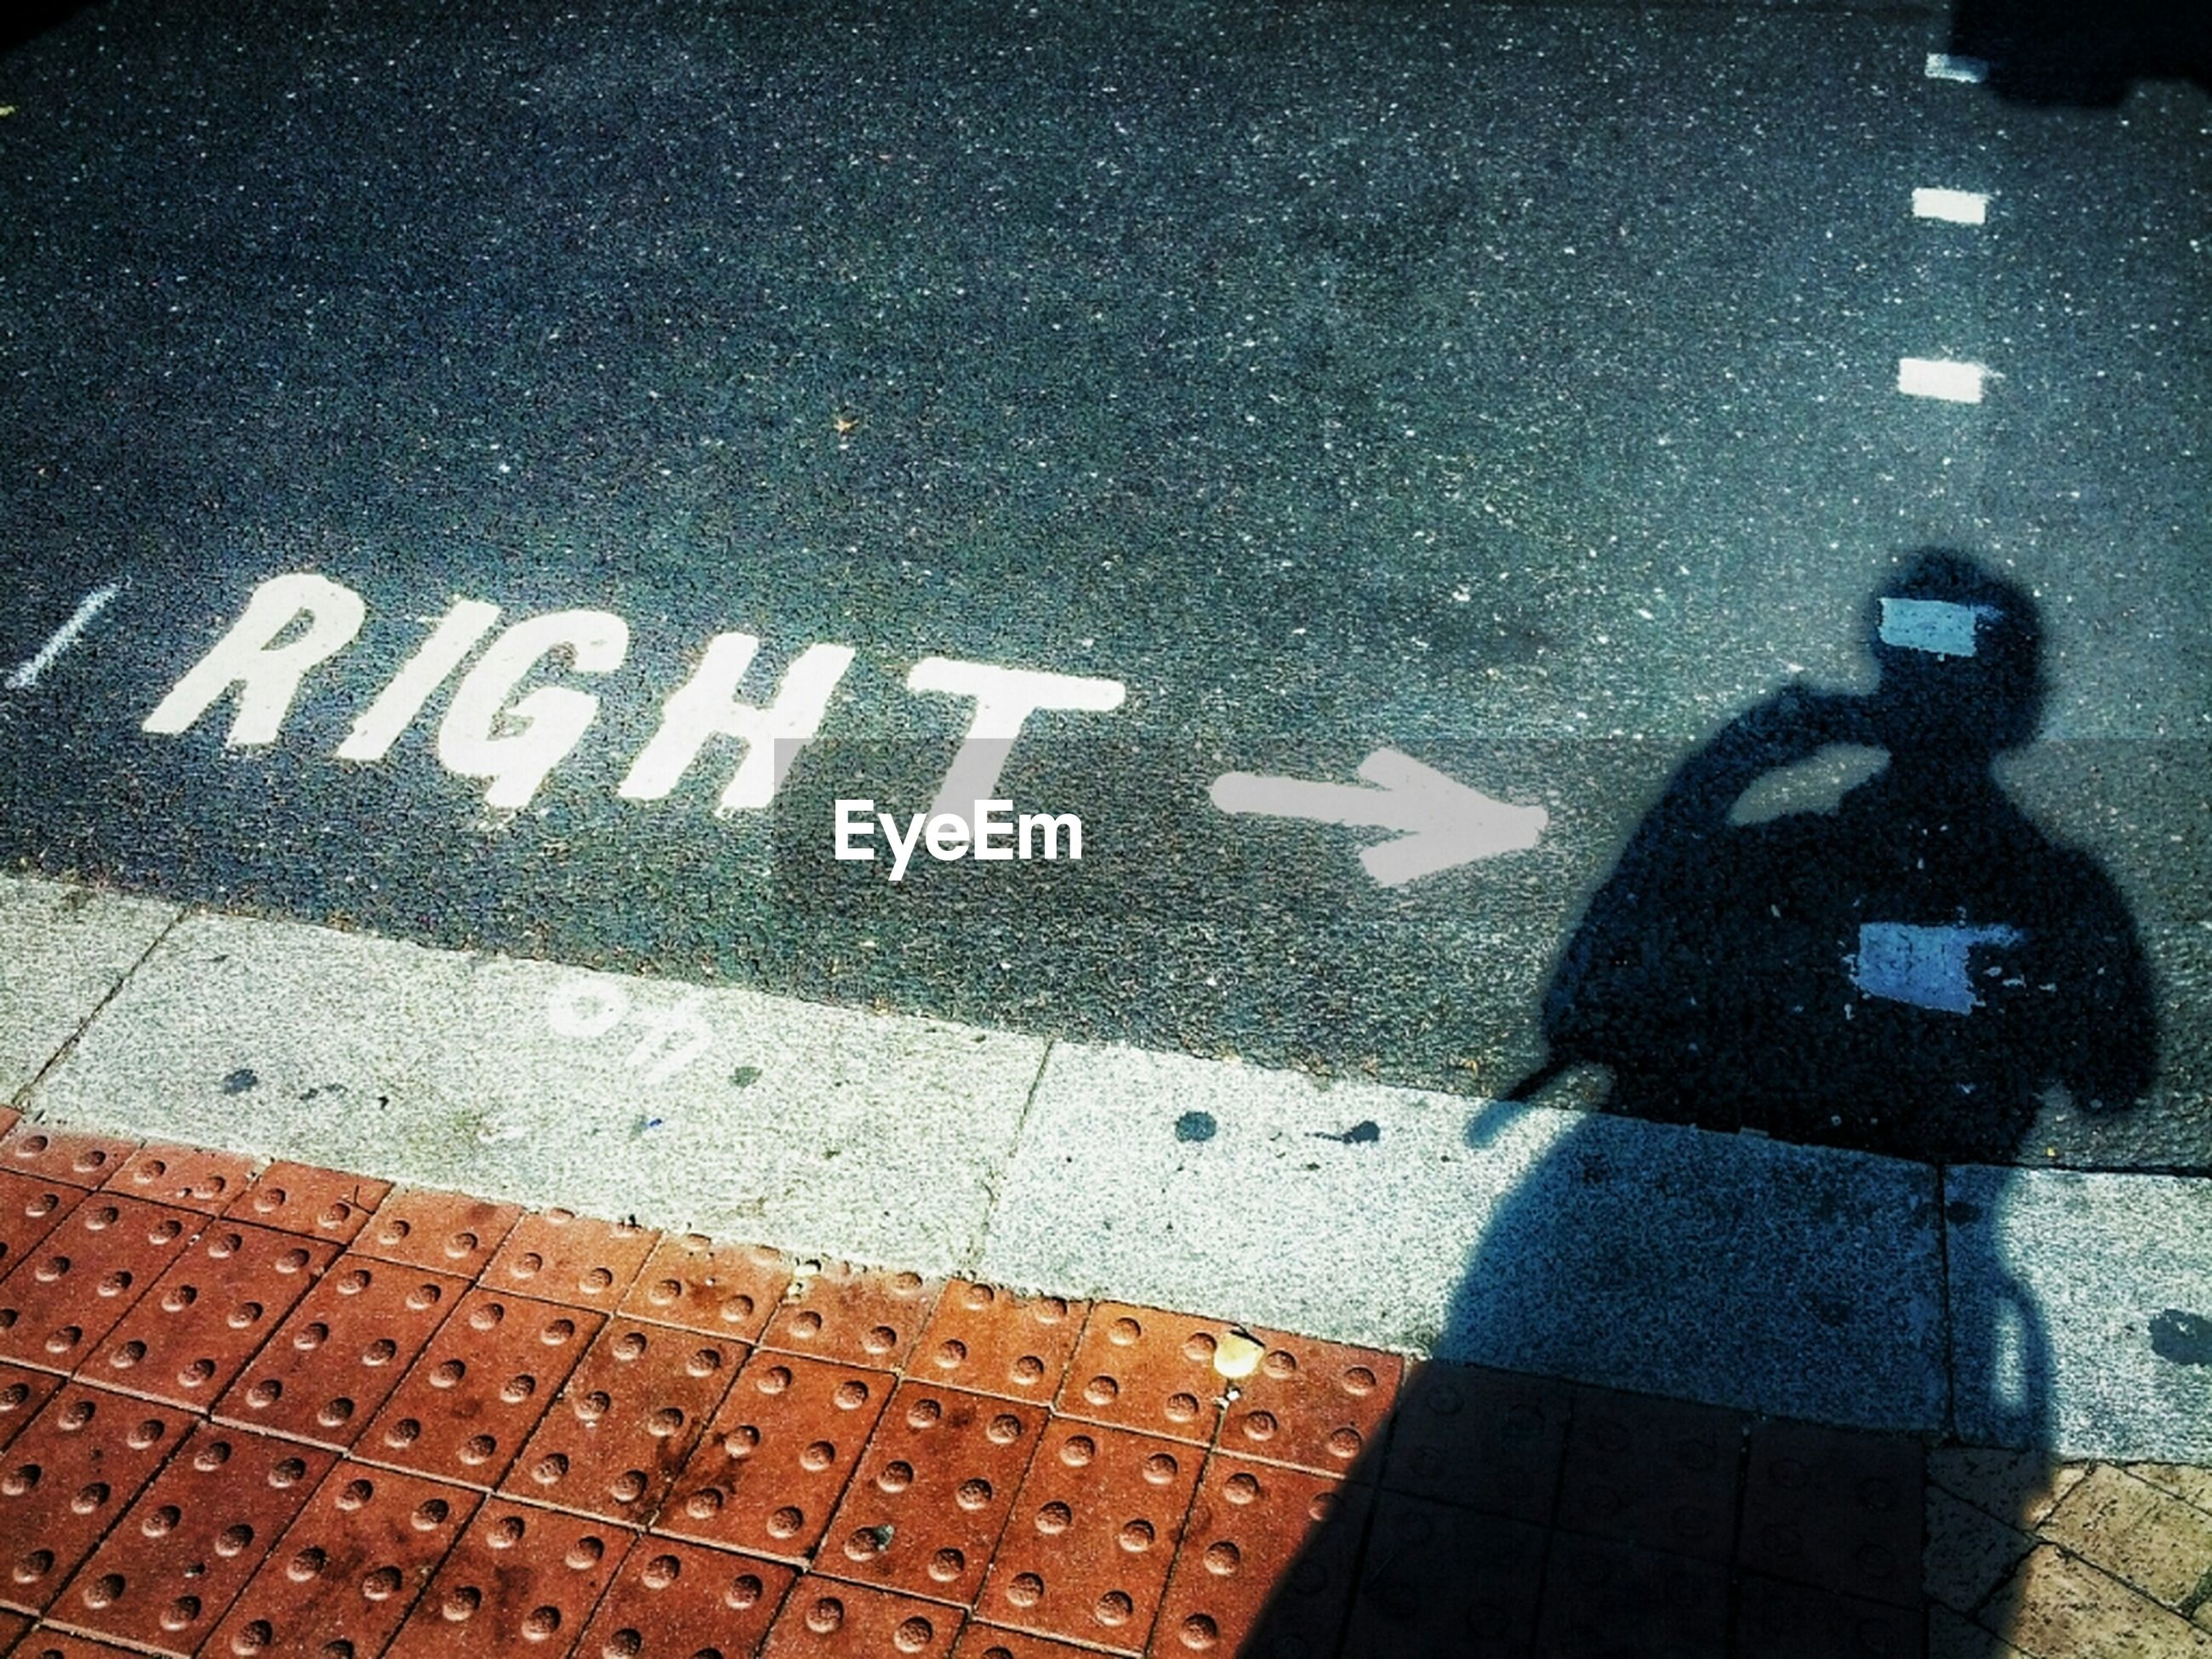 Close-up of right word and arrow sign on road